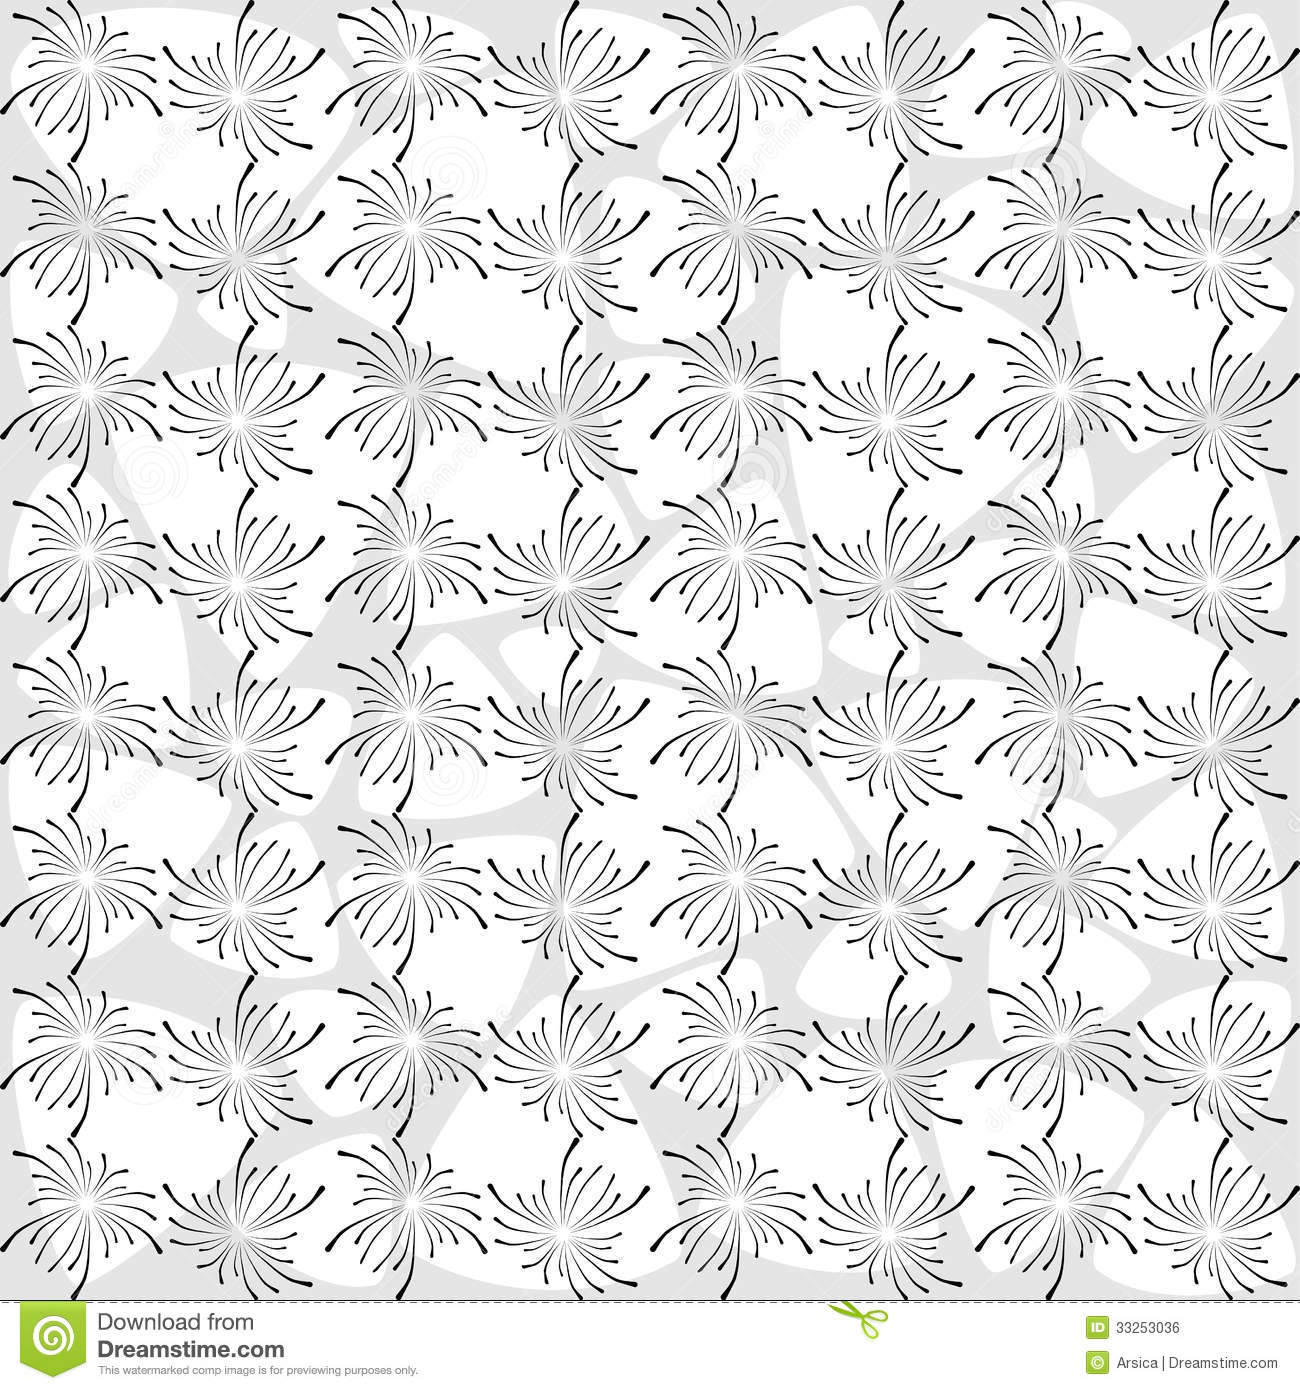 Seamless geometric texture stock photos image 27928433 - Seamless Geometric Texture Stock Photos Image 27928433 Modern Black And White